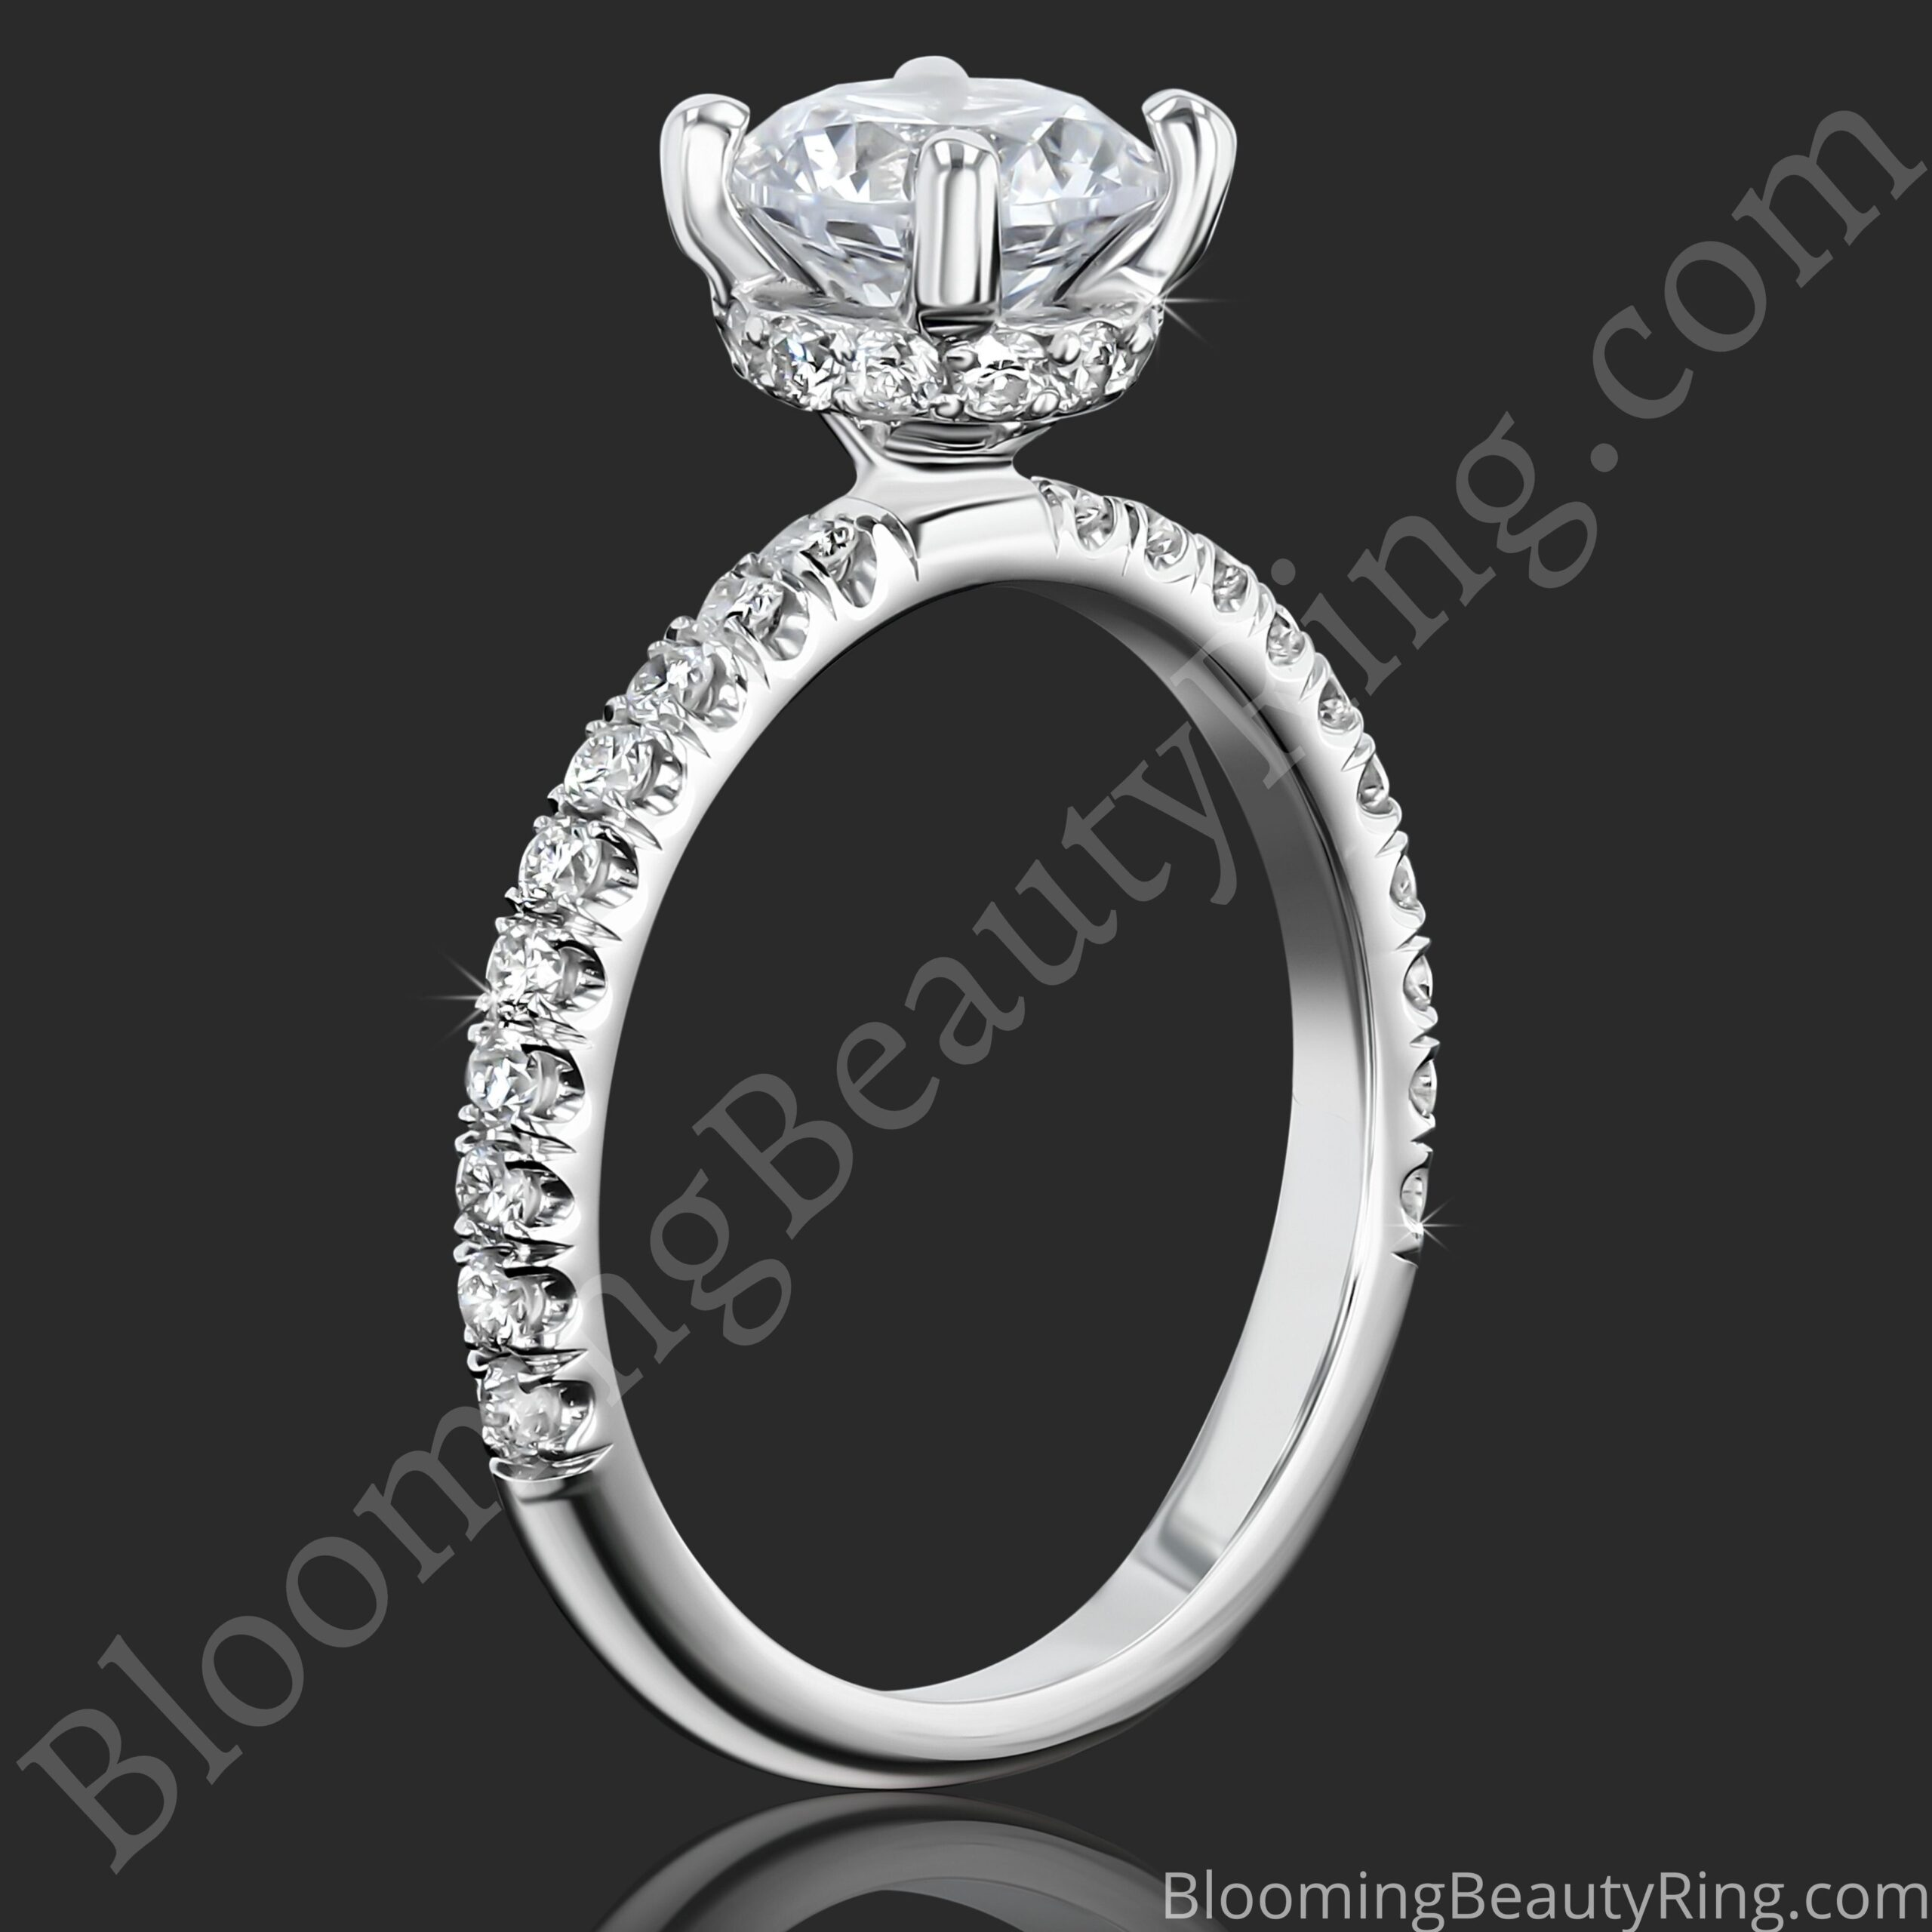 0.50 ctw Diamond Engagement Ring BBR-738E standing up